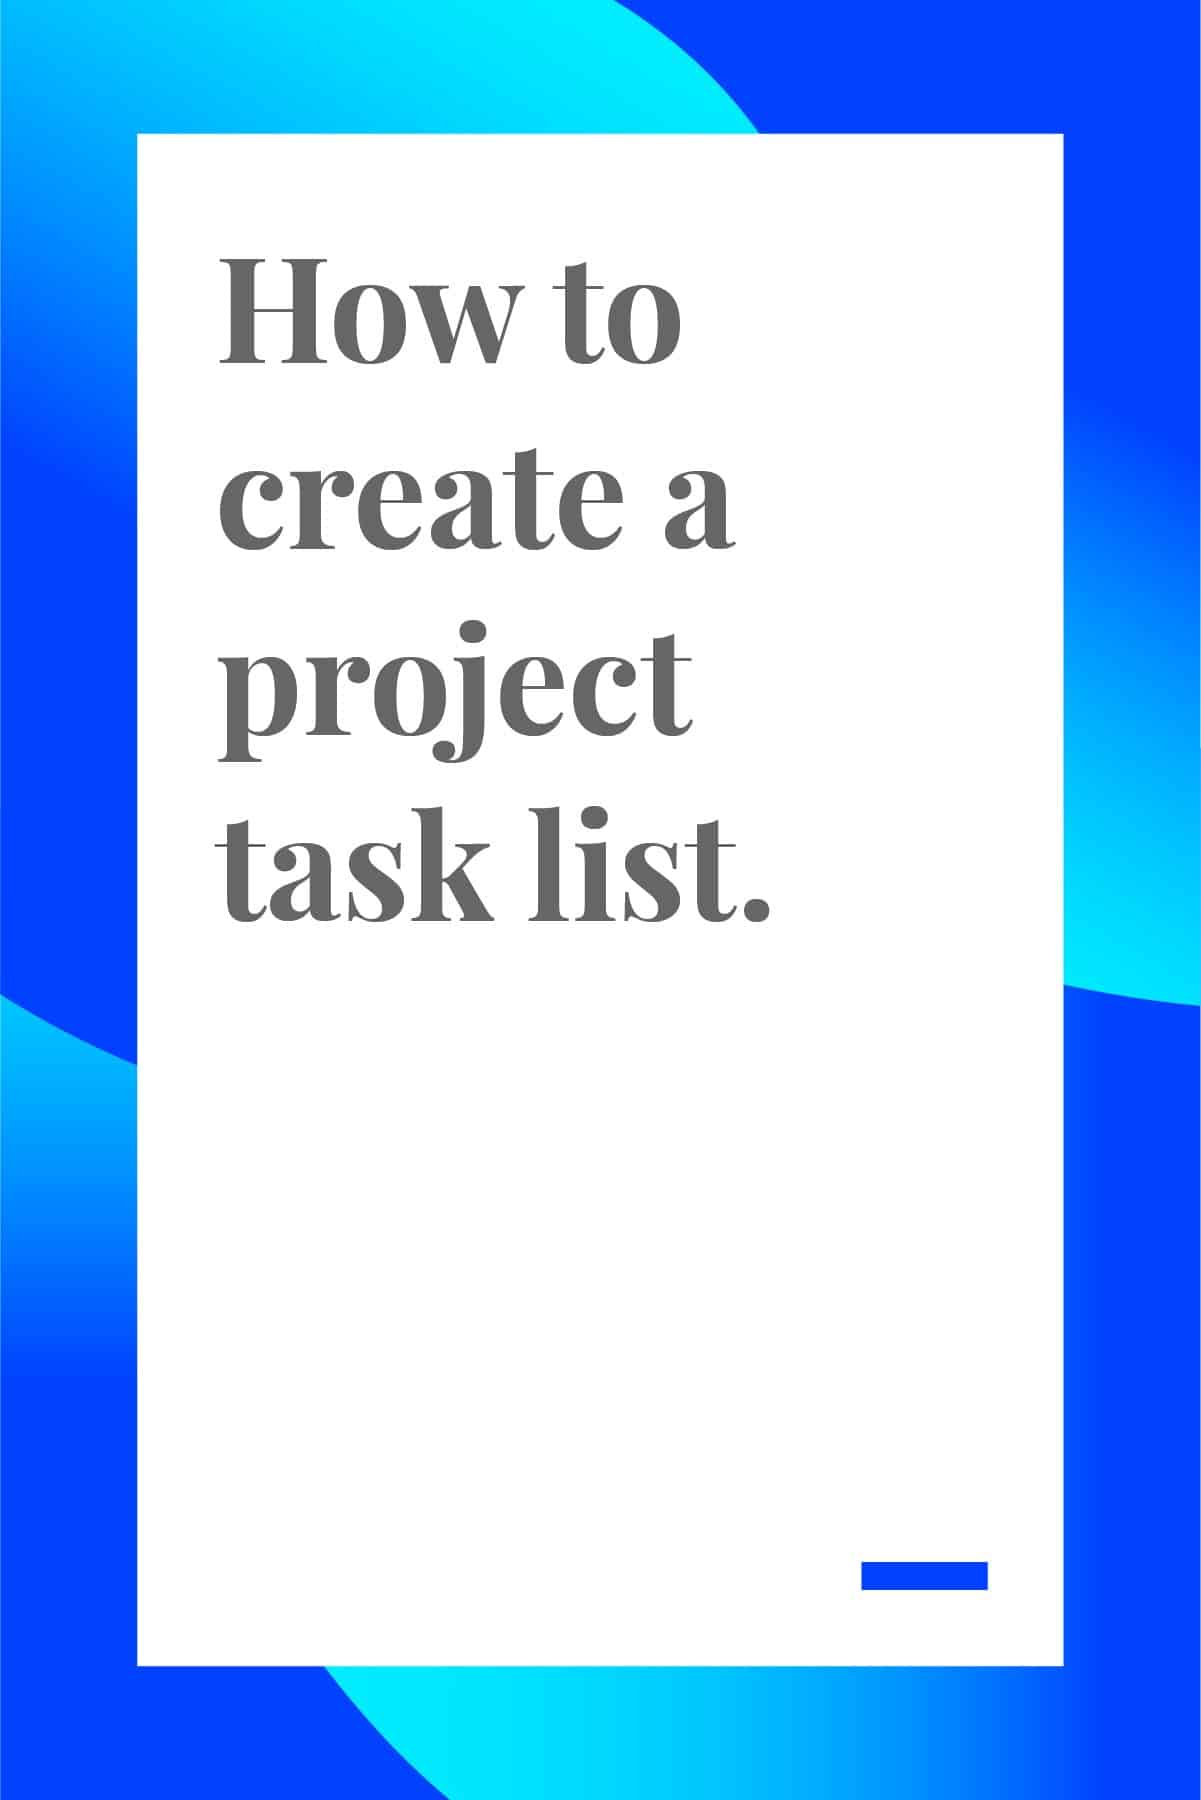 Have you ever gone grocery shopping without a list? How many items did you forget? How many did you buy that you didn't need? It's easy to forget what you need without a physical list in front of your face. Project task lists are that physical list for project managers and team leads. Project task lists are the foundation to any project. Without them, it's easy to get overwhelmed with the sheer amount of tasks that need to be done. Because project task lists are so important, let's go over how you can utilize them to make your workflow much smoother. #projectmanagementtips